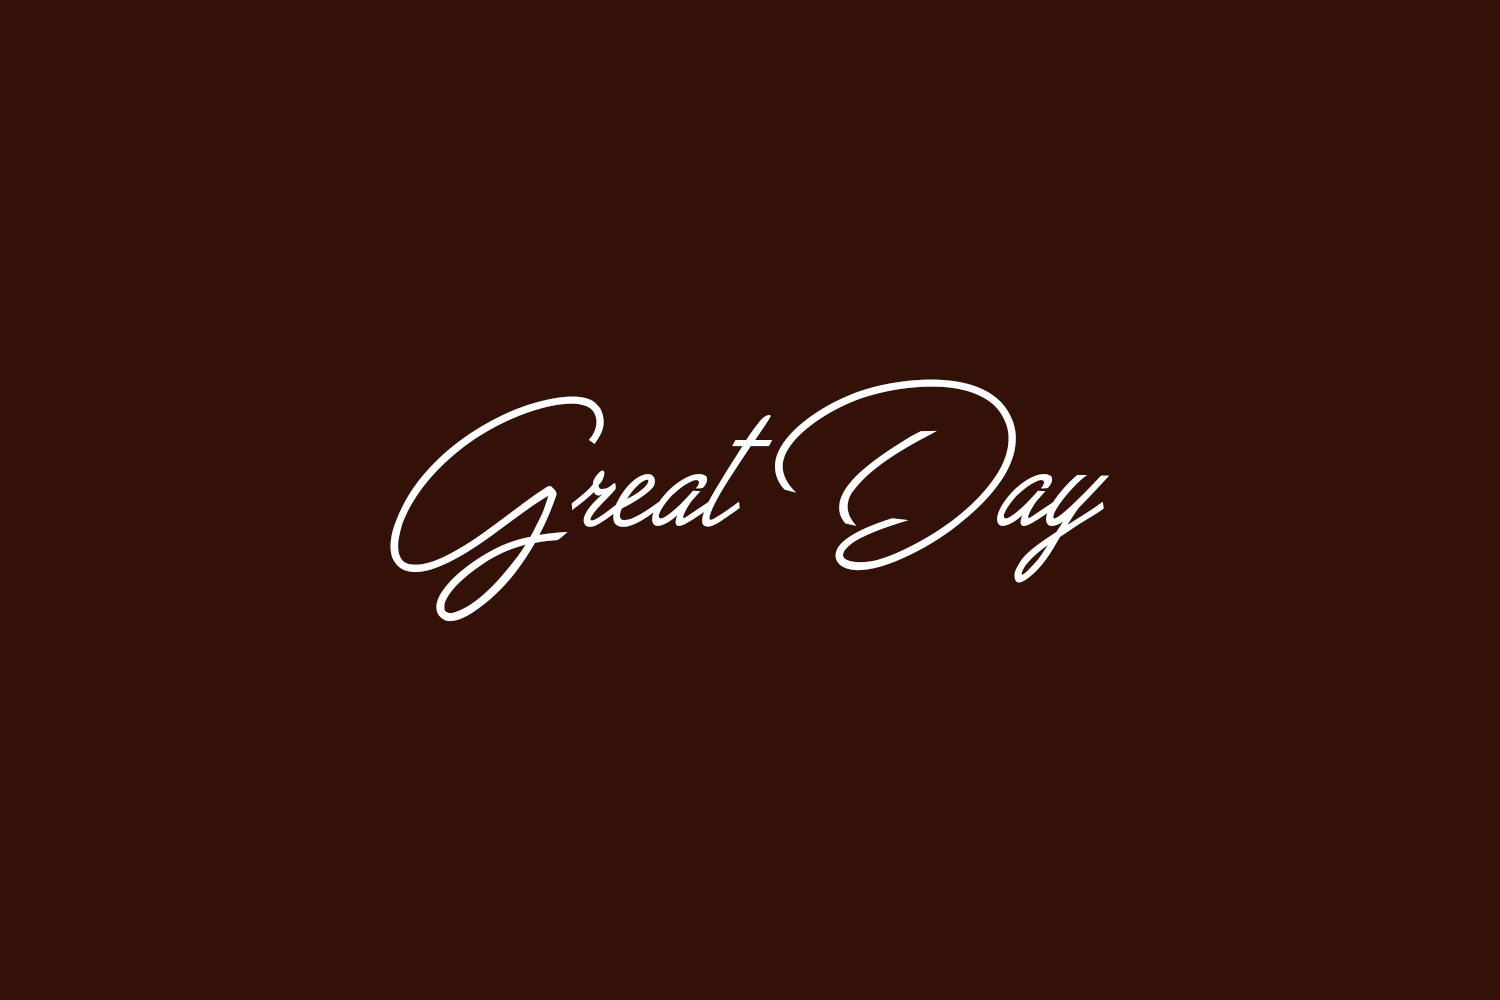 Great Day Free Font